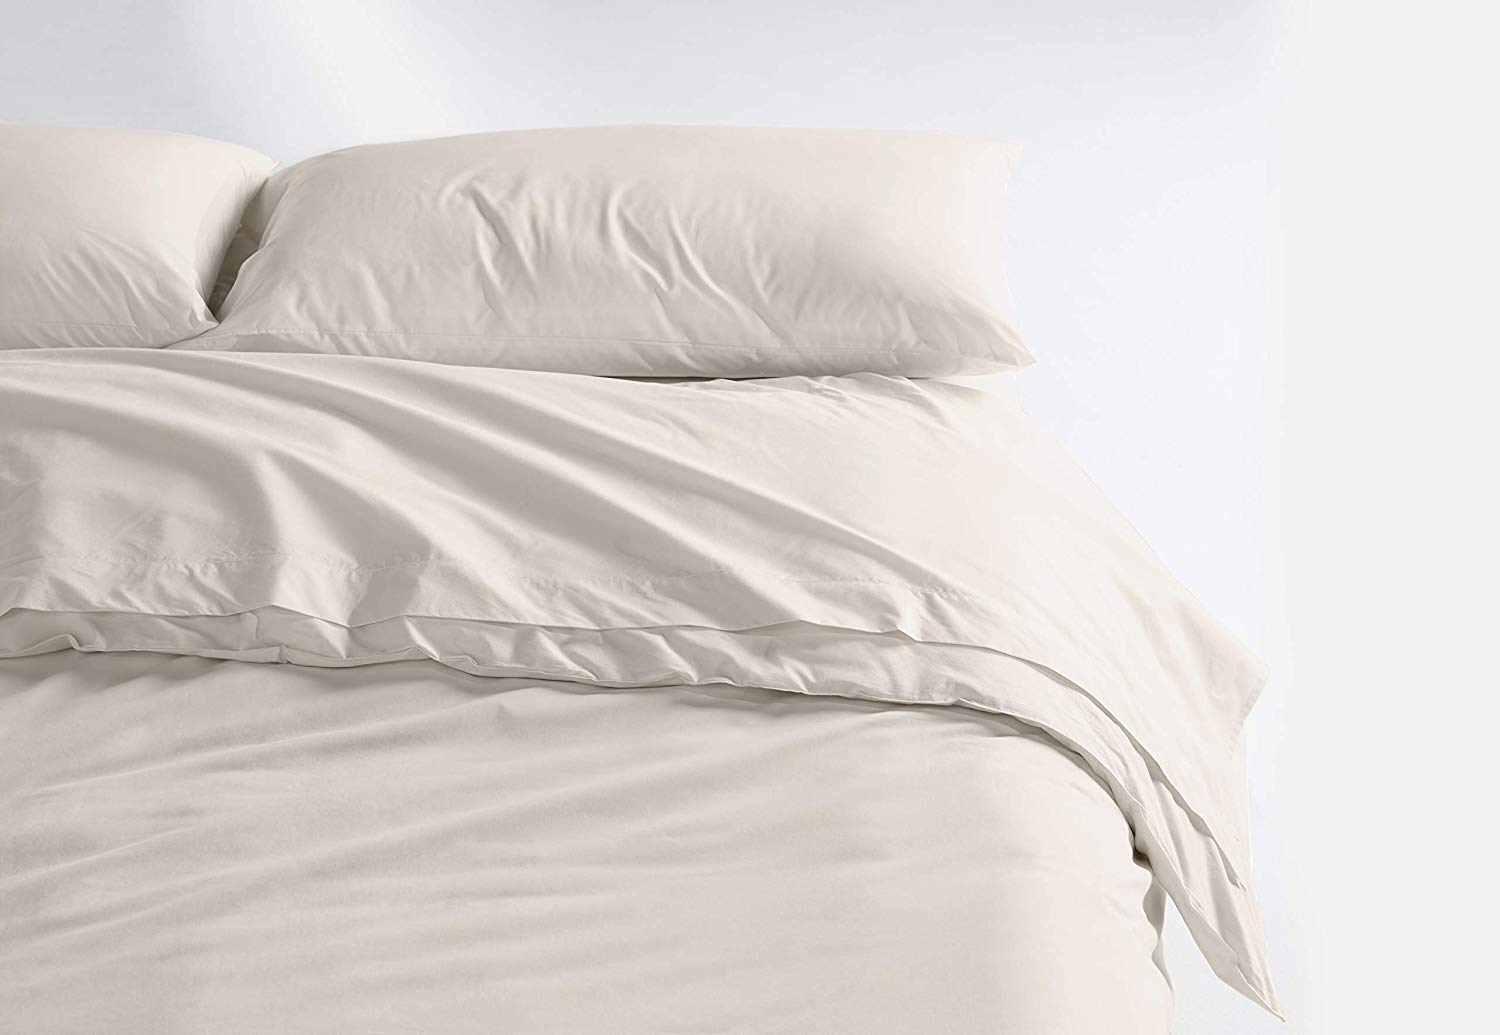 Casper Microfiber vs. Cotton Sheets Review by www.snoremagazine.com